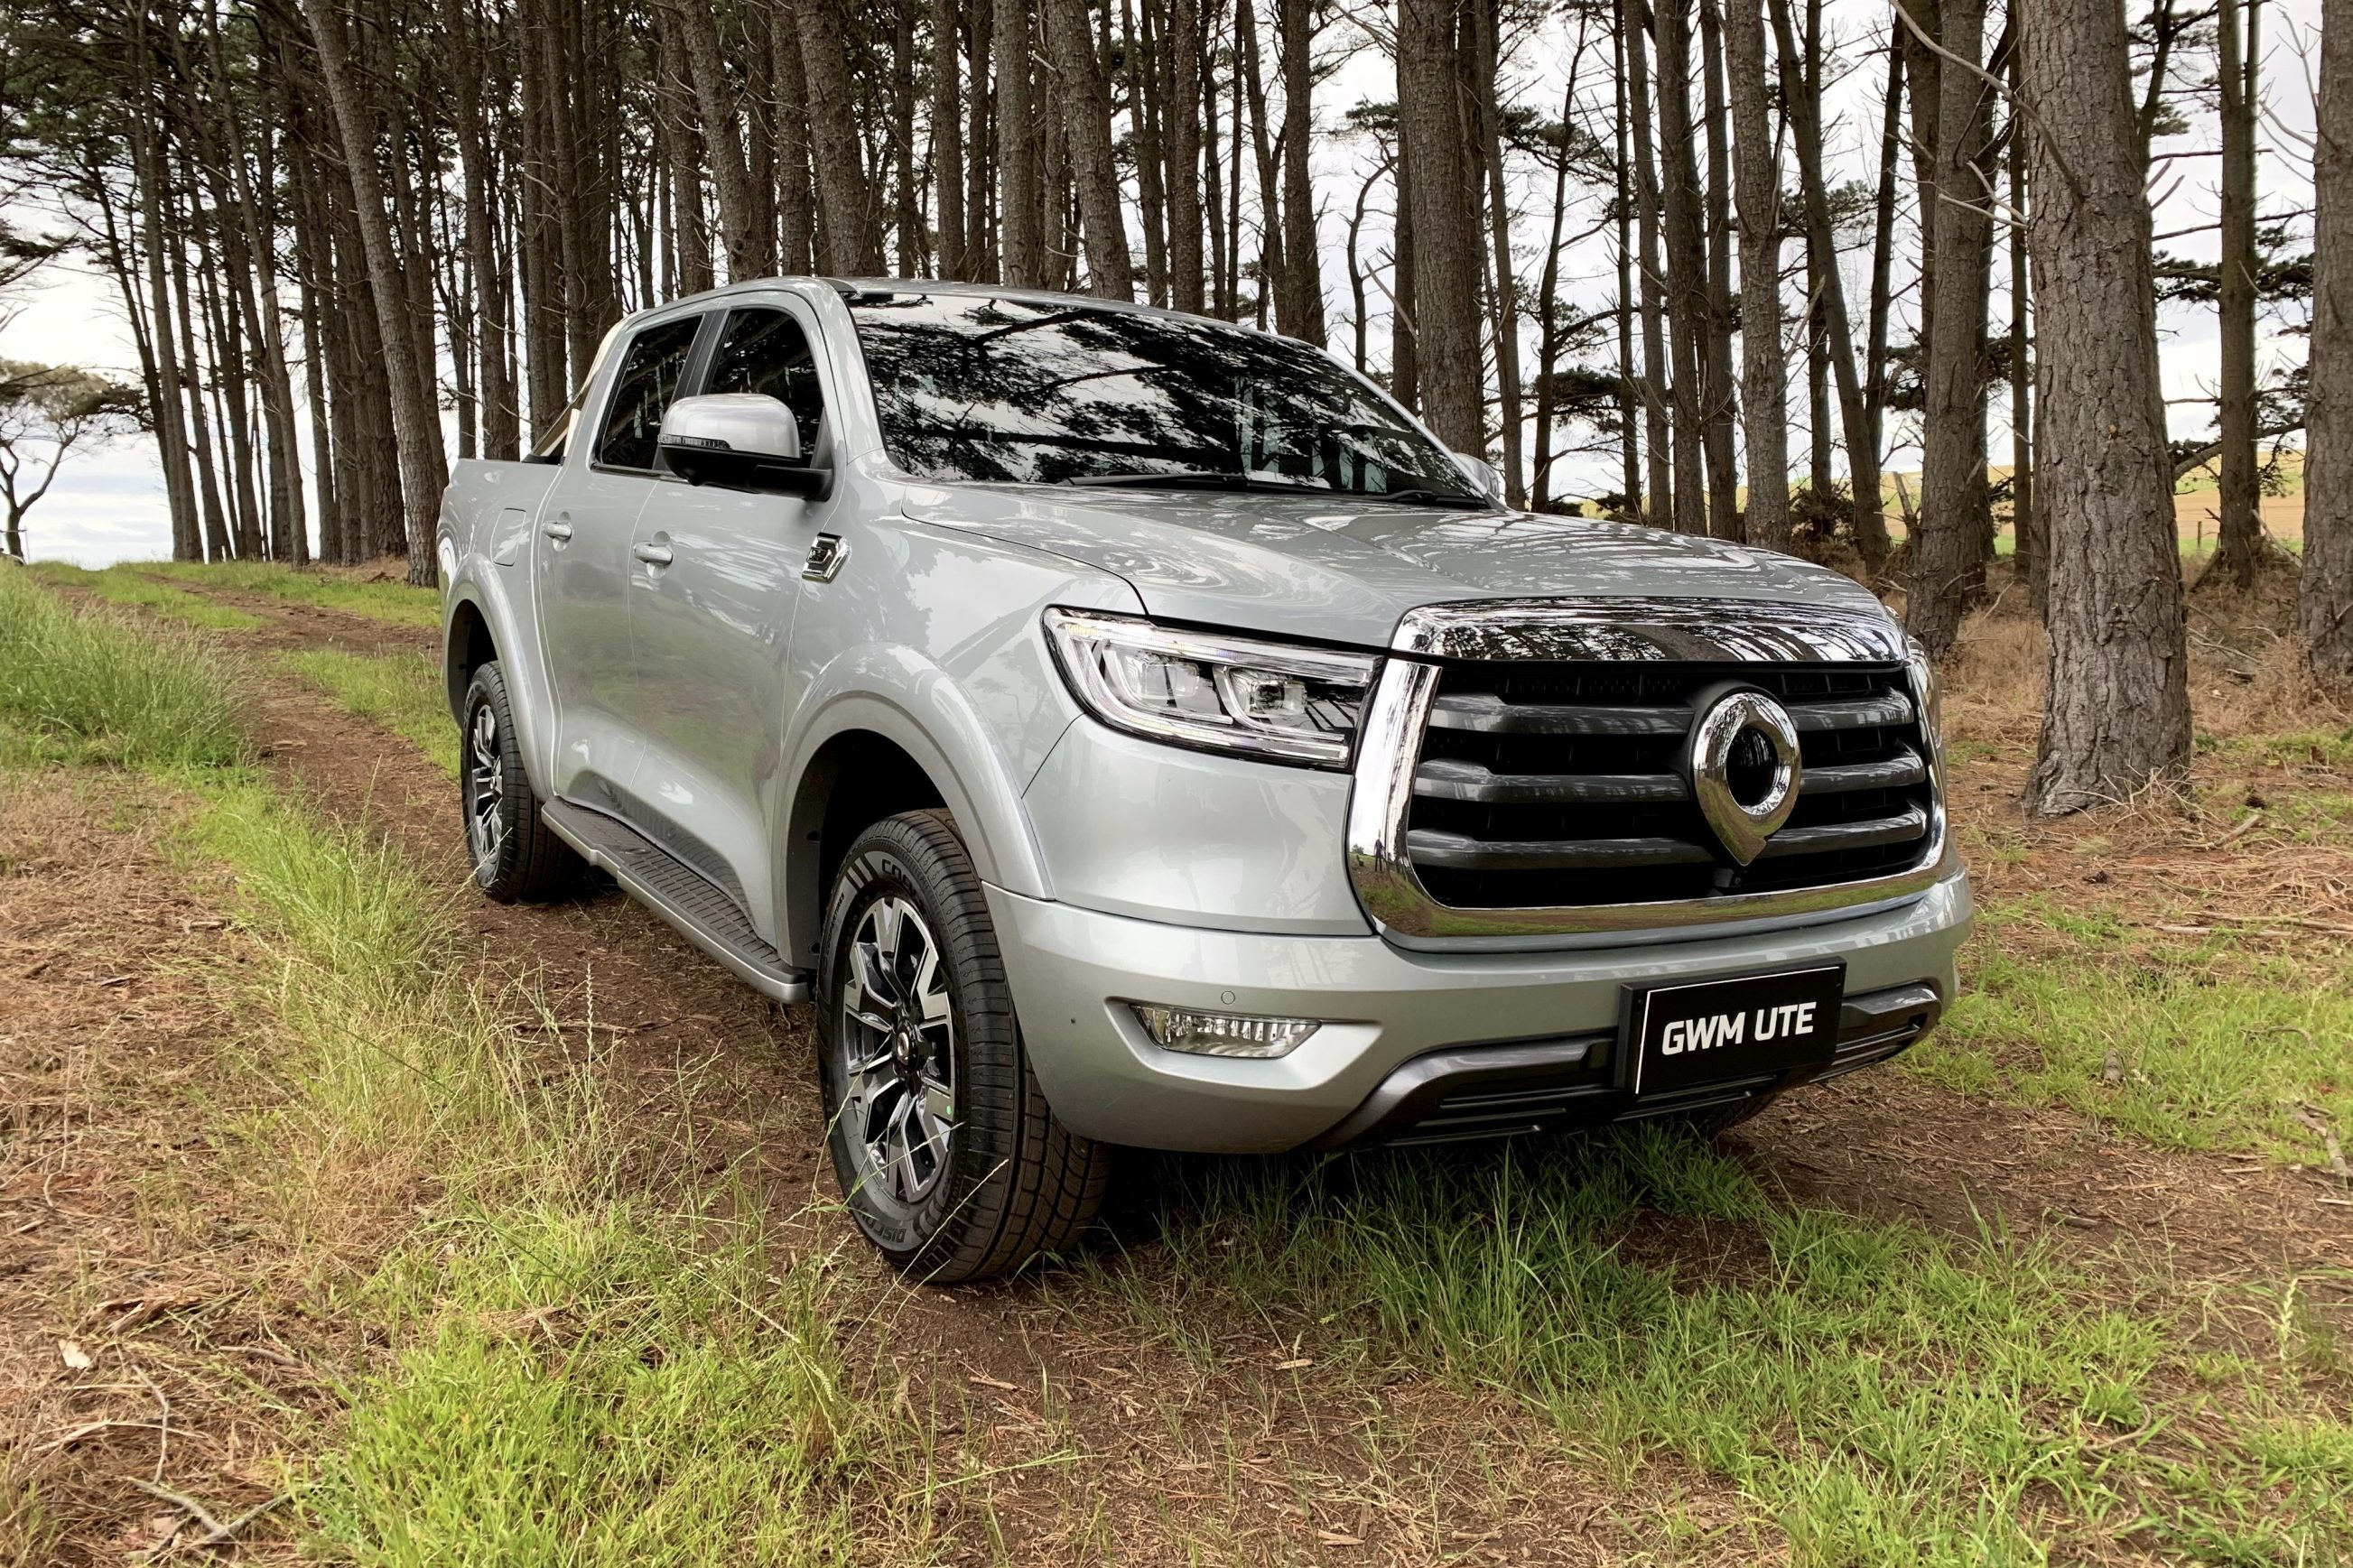 The all-new GWM dual cab ute for sale in Perth